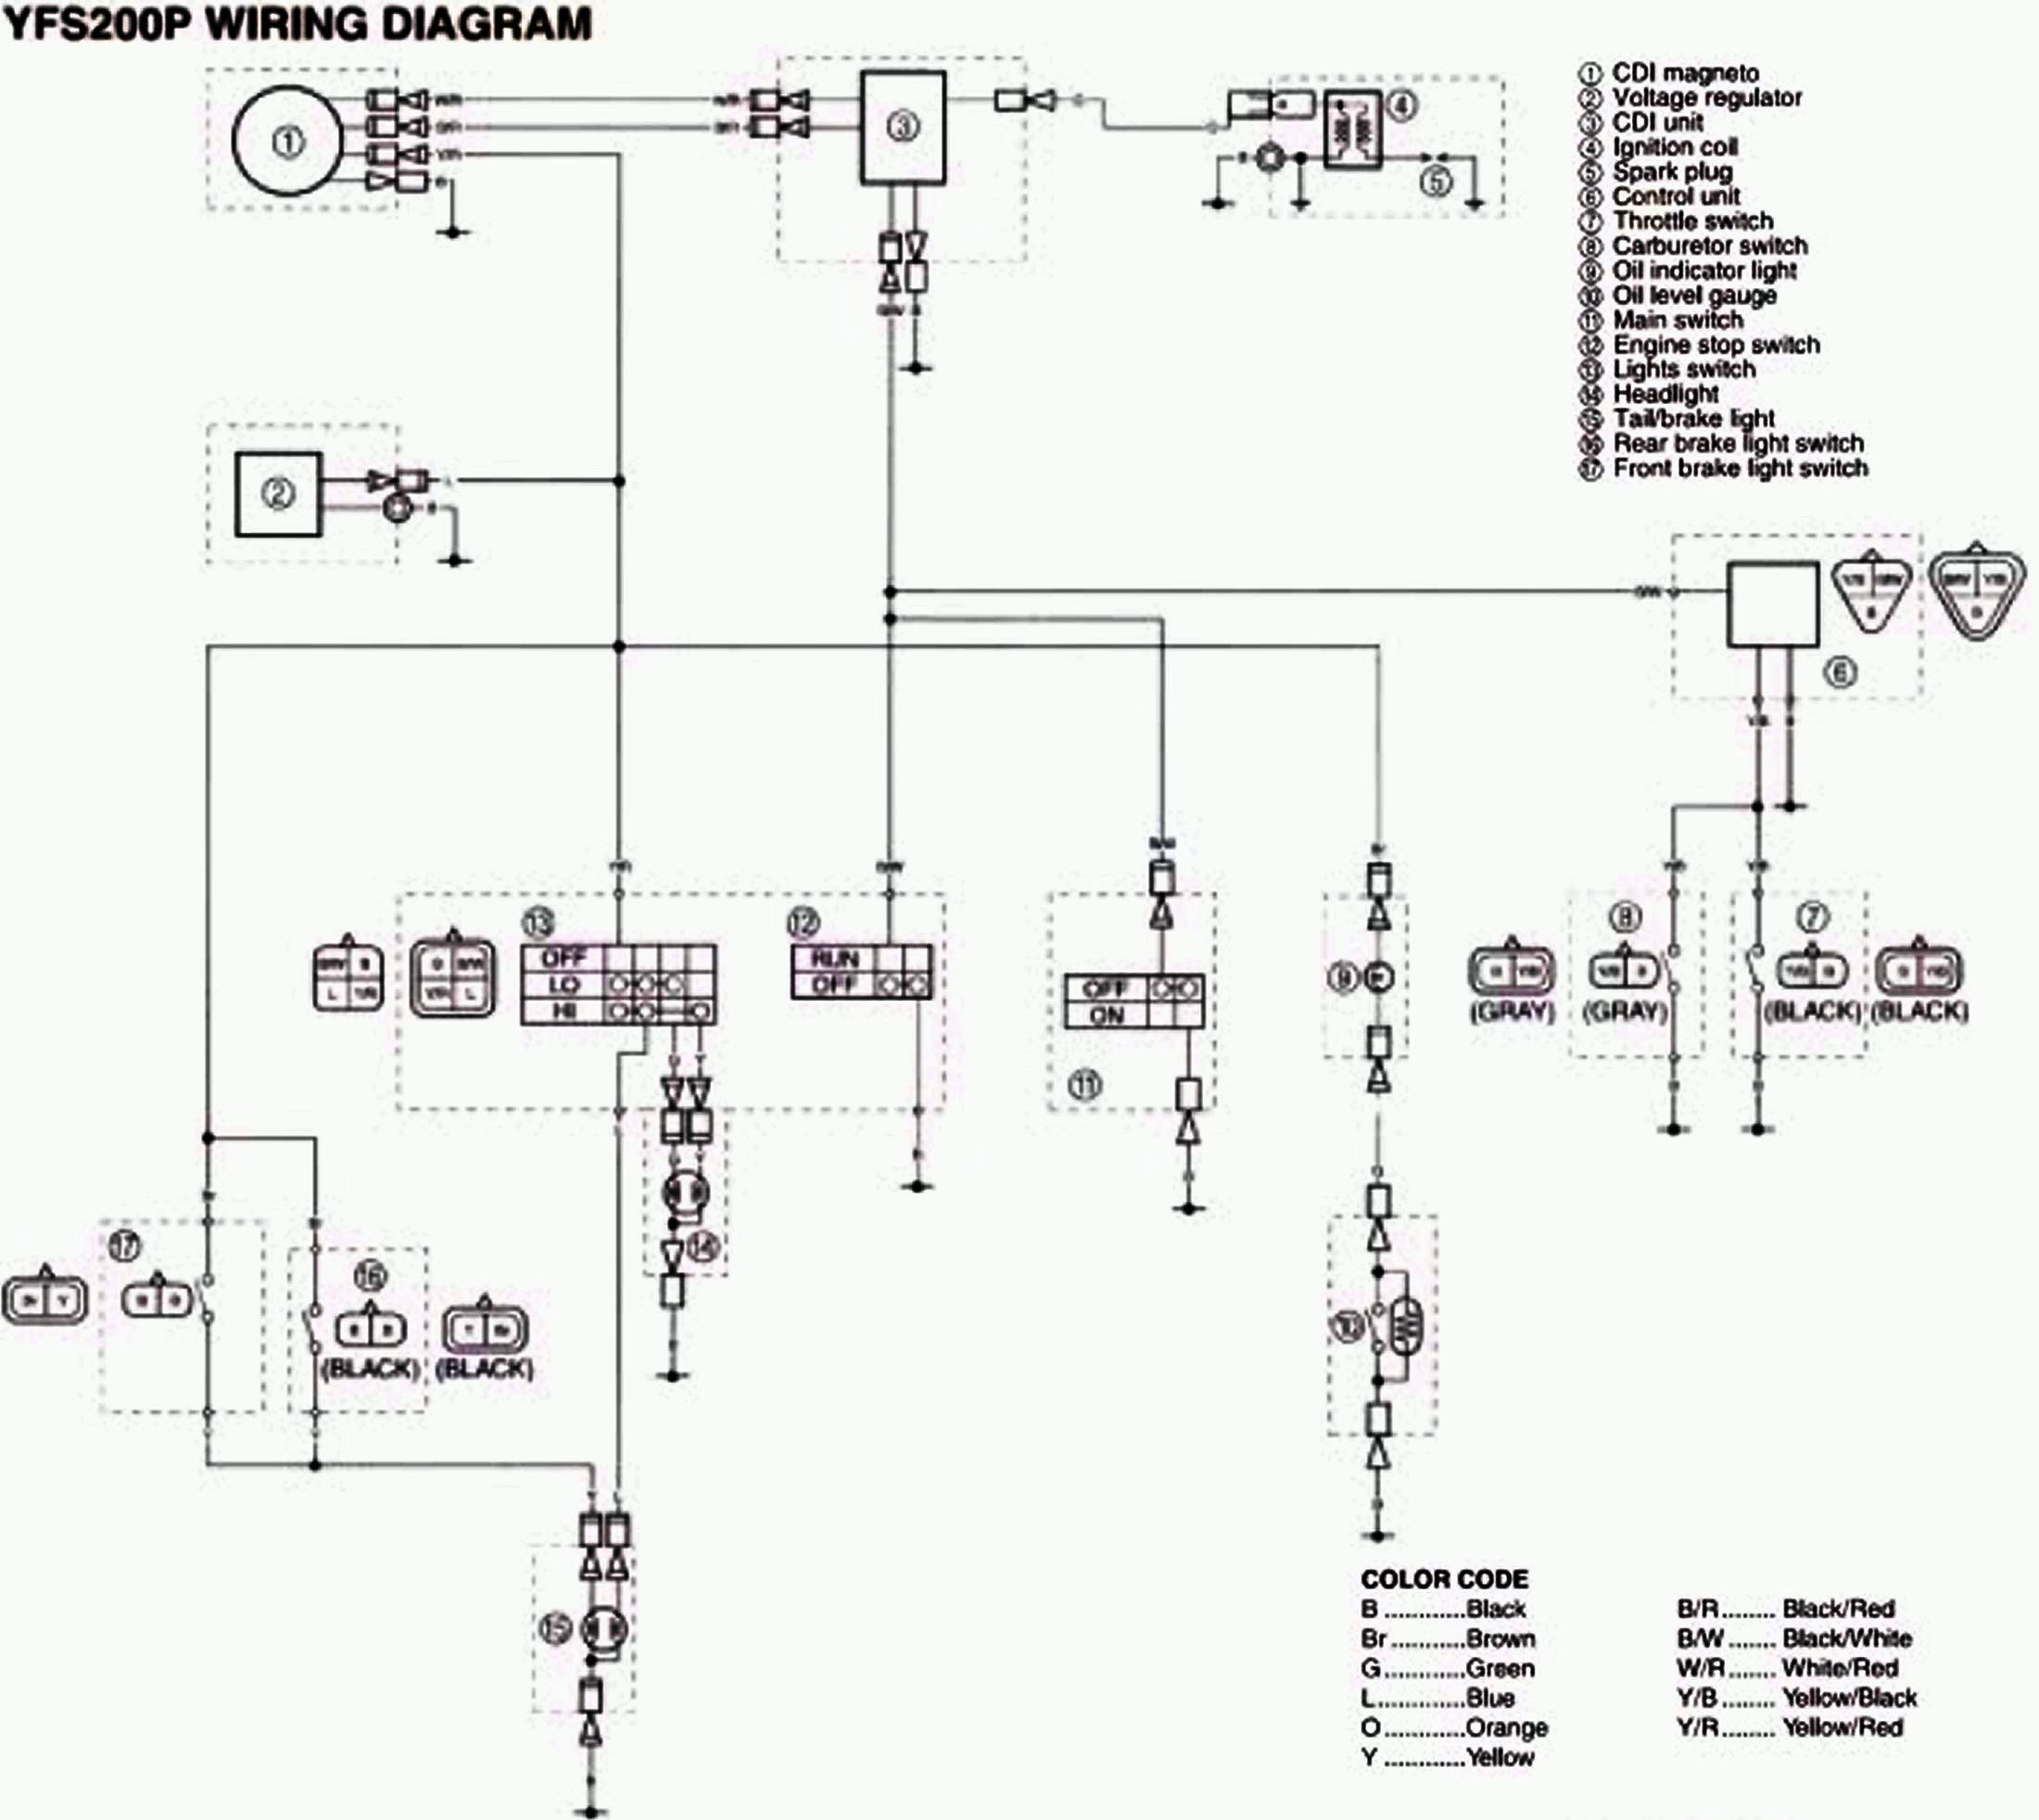 Yale Glc080 Wiring Diagram Engine Stator Reinvent Your Stock Diagrams Blasterforum Com Rh 50cc Scooter Starter